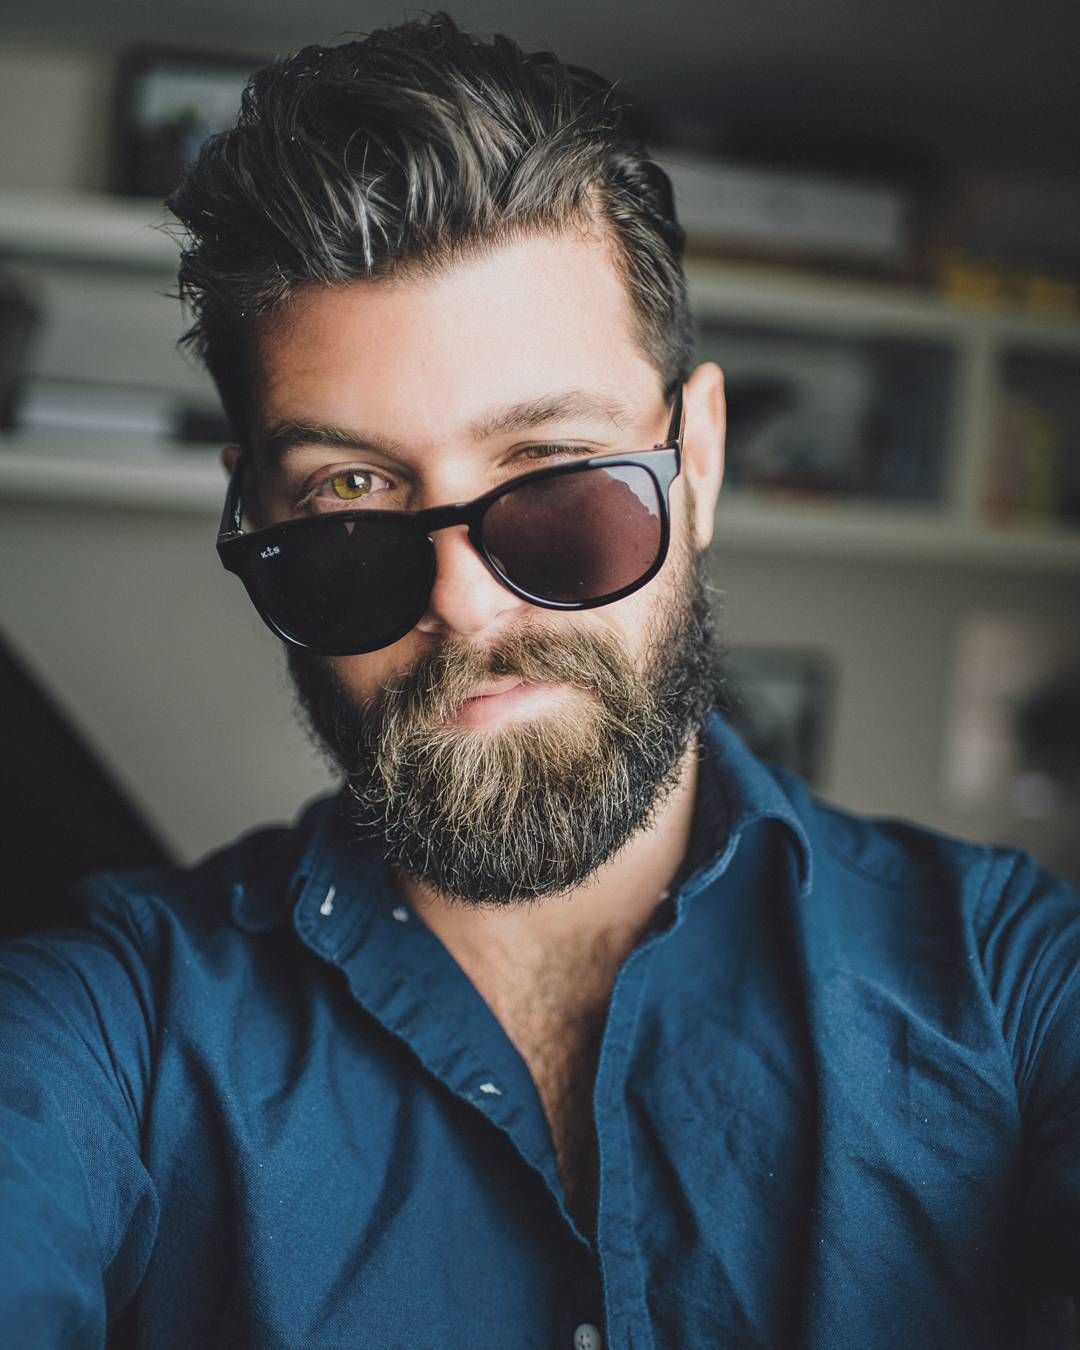 Fashionable mens haircuts pin by capital pines m on outfits  pinterest  beard styles and